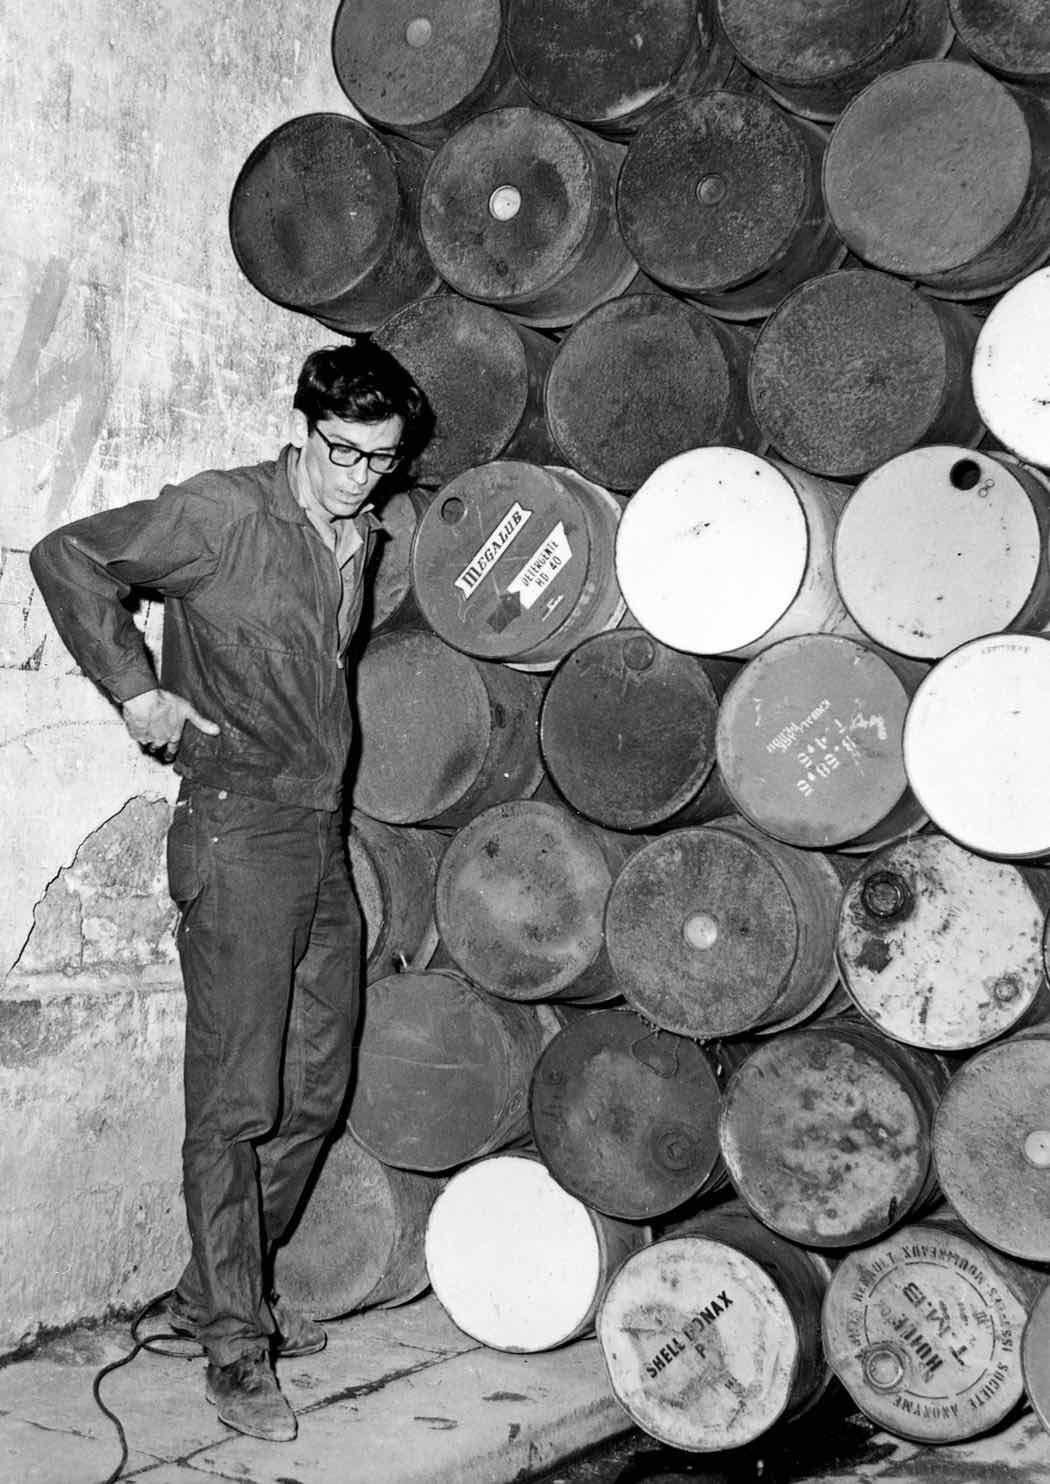 Wall of Oil Barrels, Paris 1962 - Photo by Shunk-Kender ©Christo